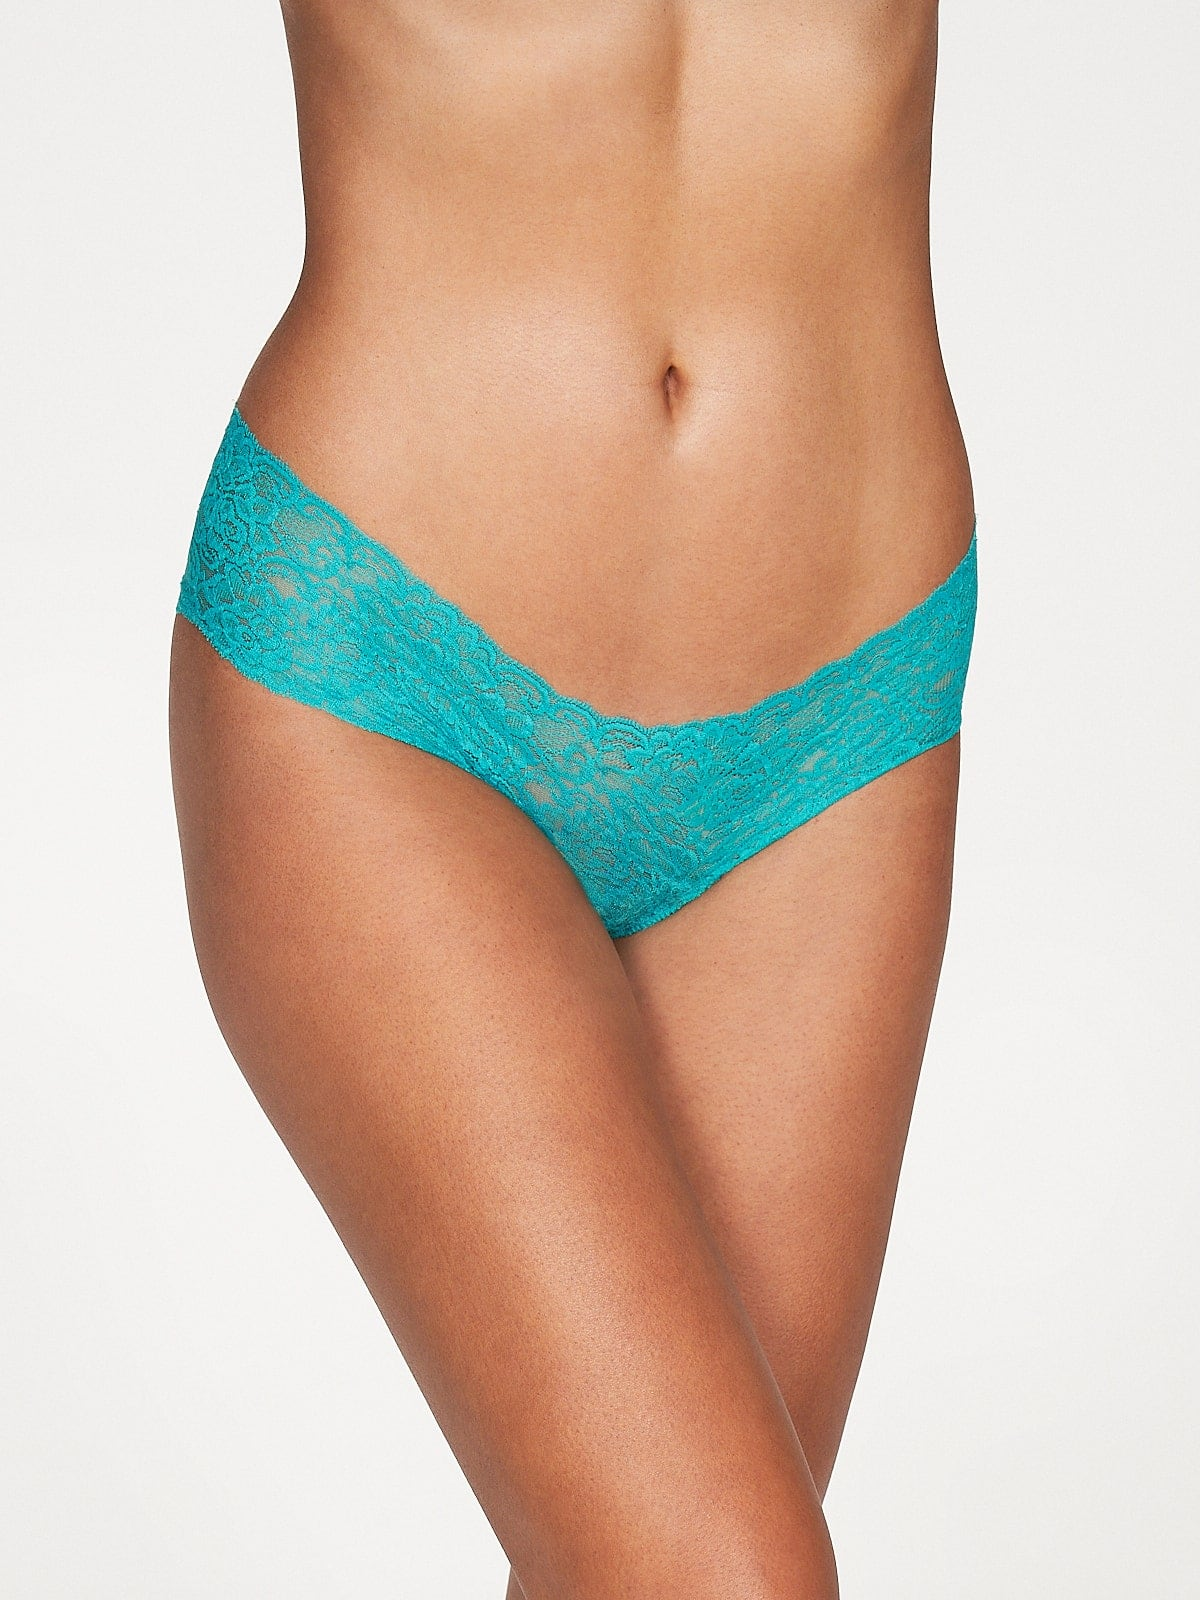 Panties from $4.47 & Free Shipping - Frederick's of Hollywood